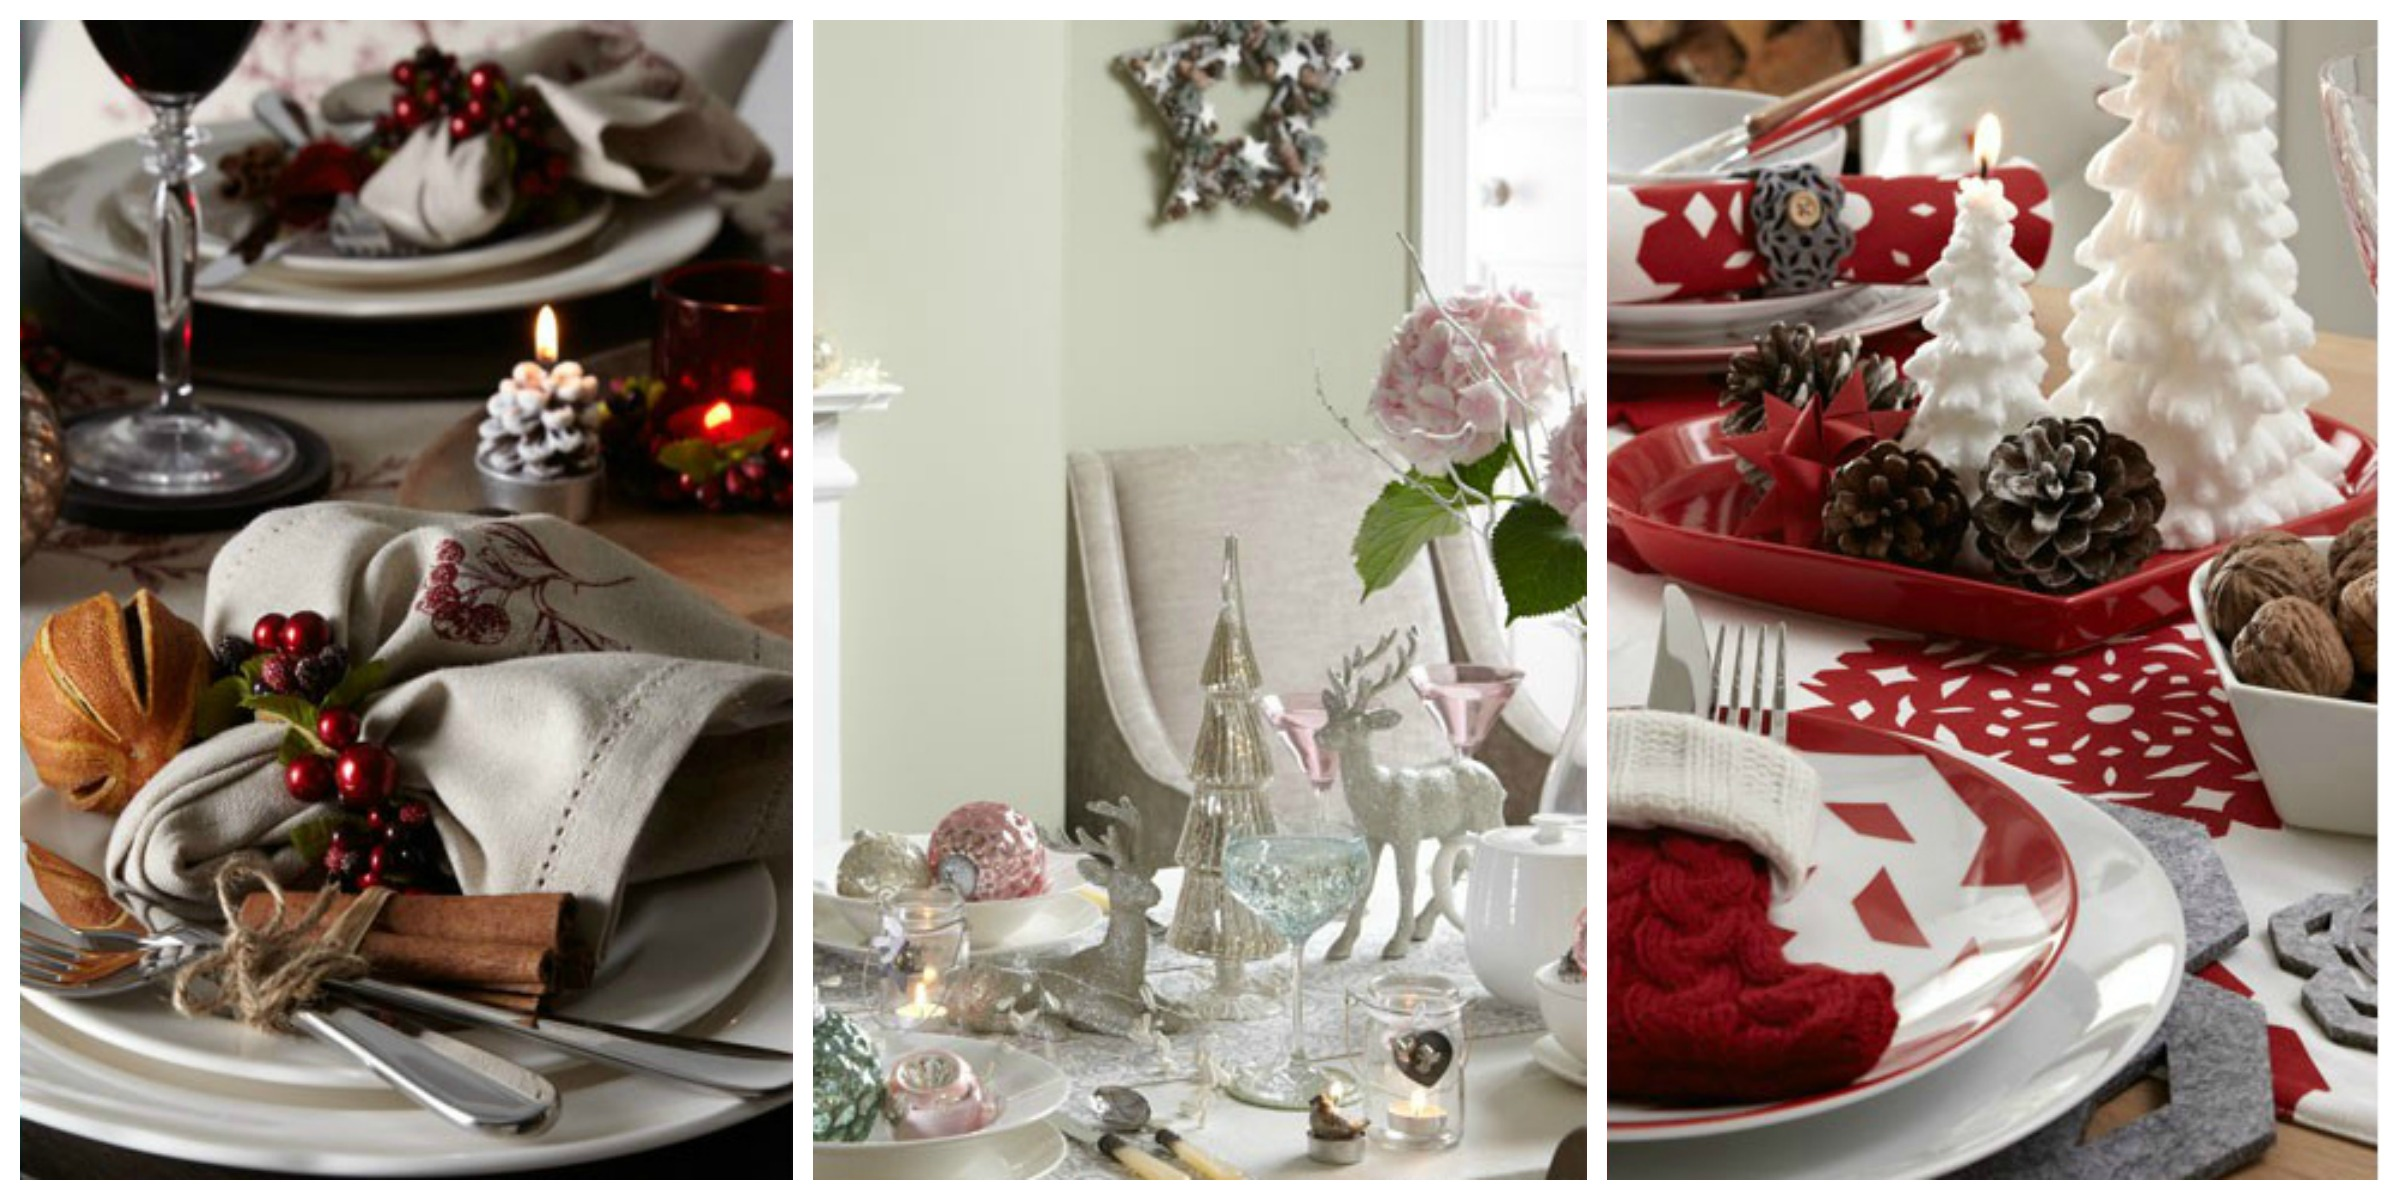 Festive Home Decor 10 Christmas table decoration ideas  : festive home decor christmas table decoration ideas john lewis from www.homegems.net size 2400 x 1200 jpeg 483kB